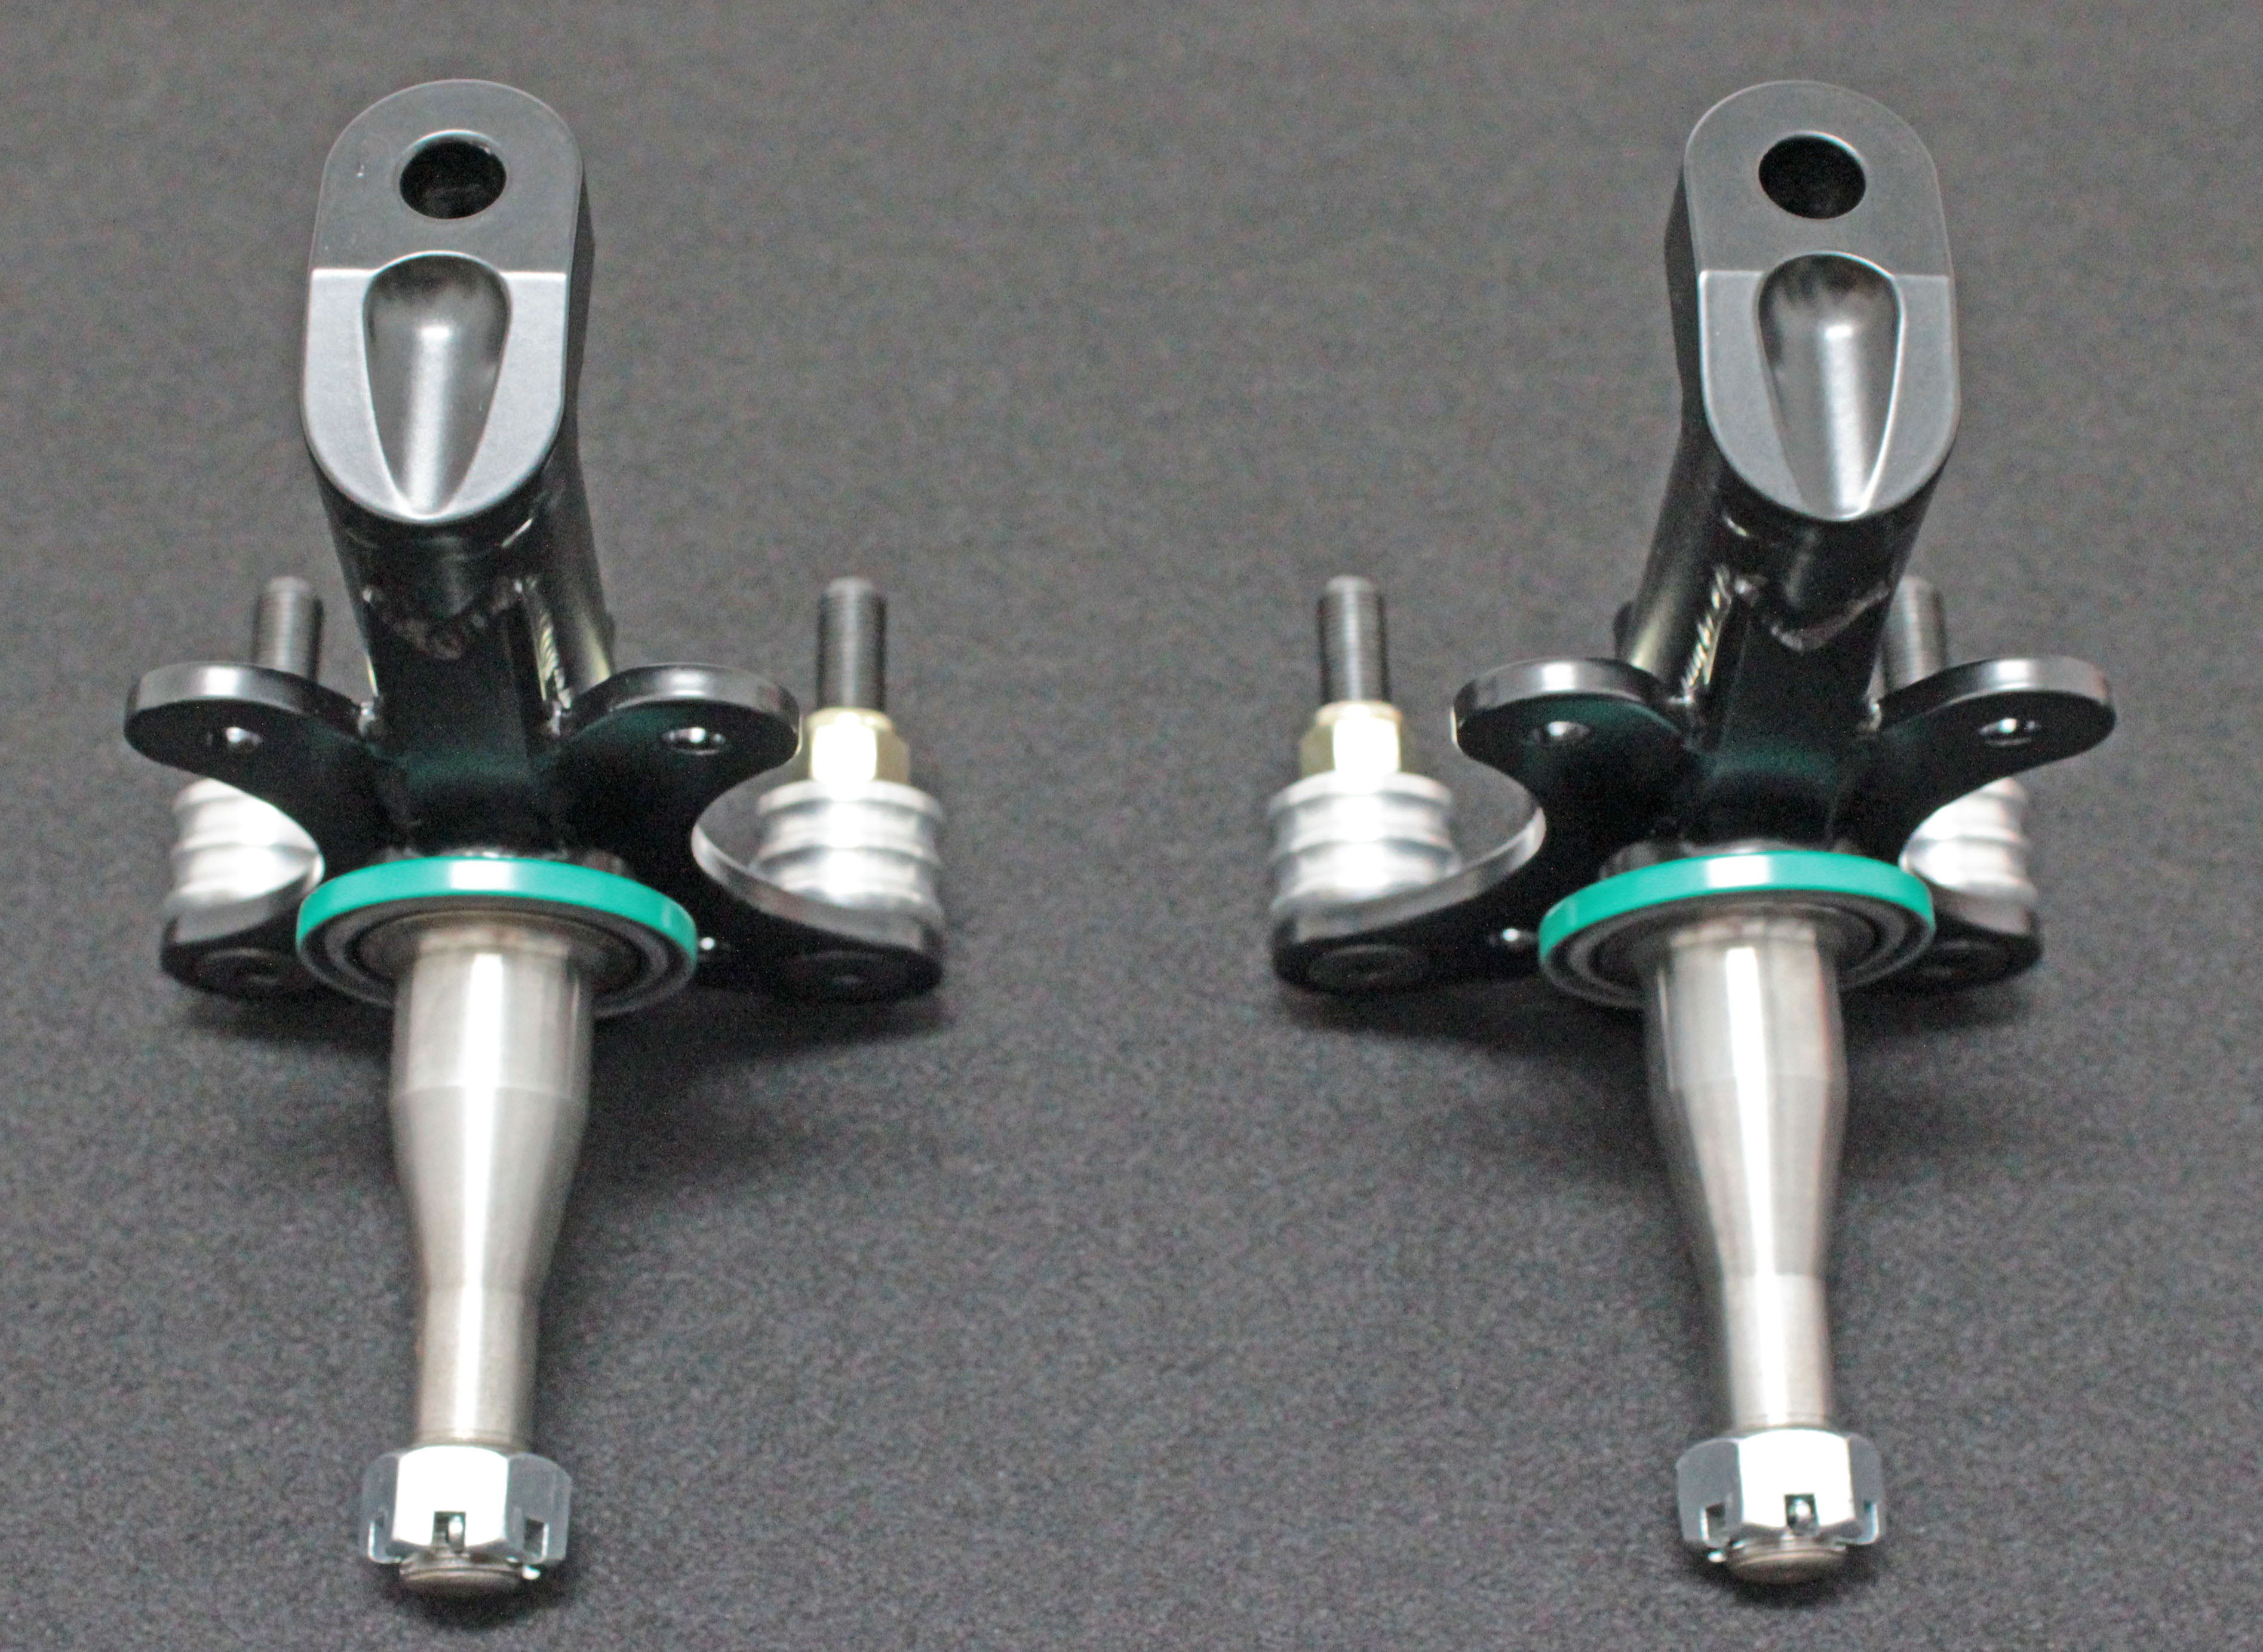 TRZ G-Body 1 5″ Drop Spindle (Spindle Mount Brakes)